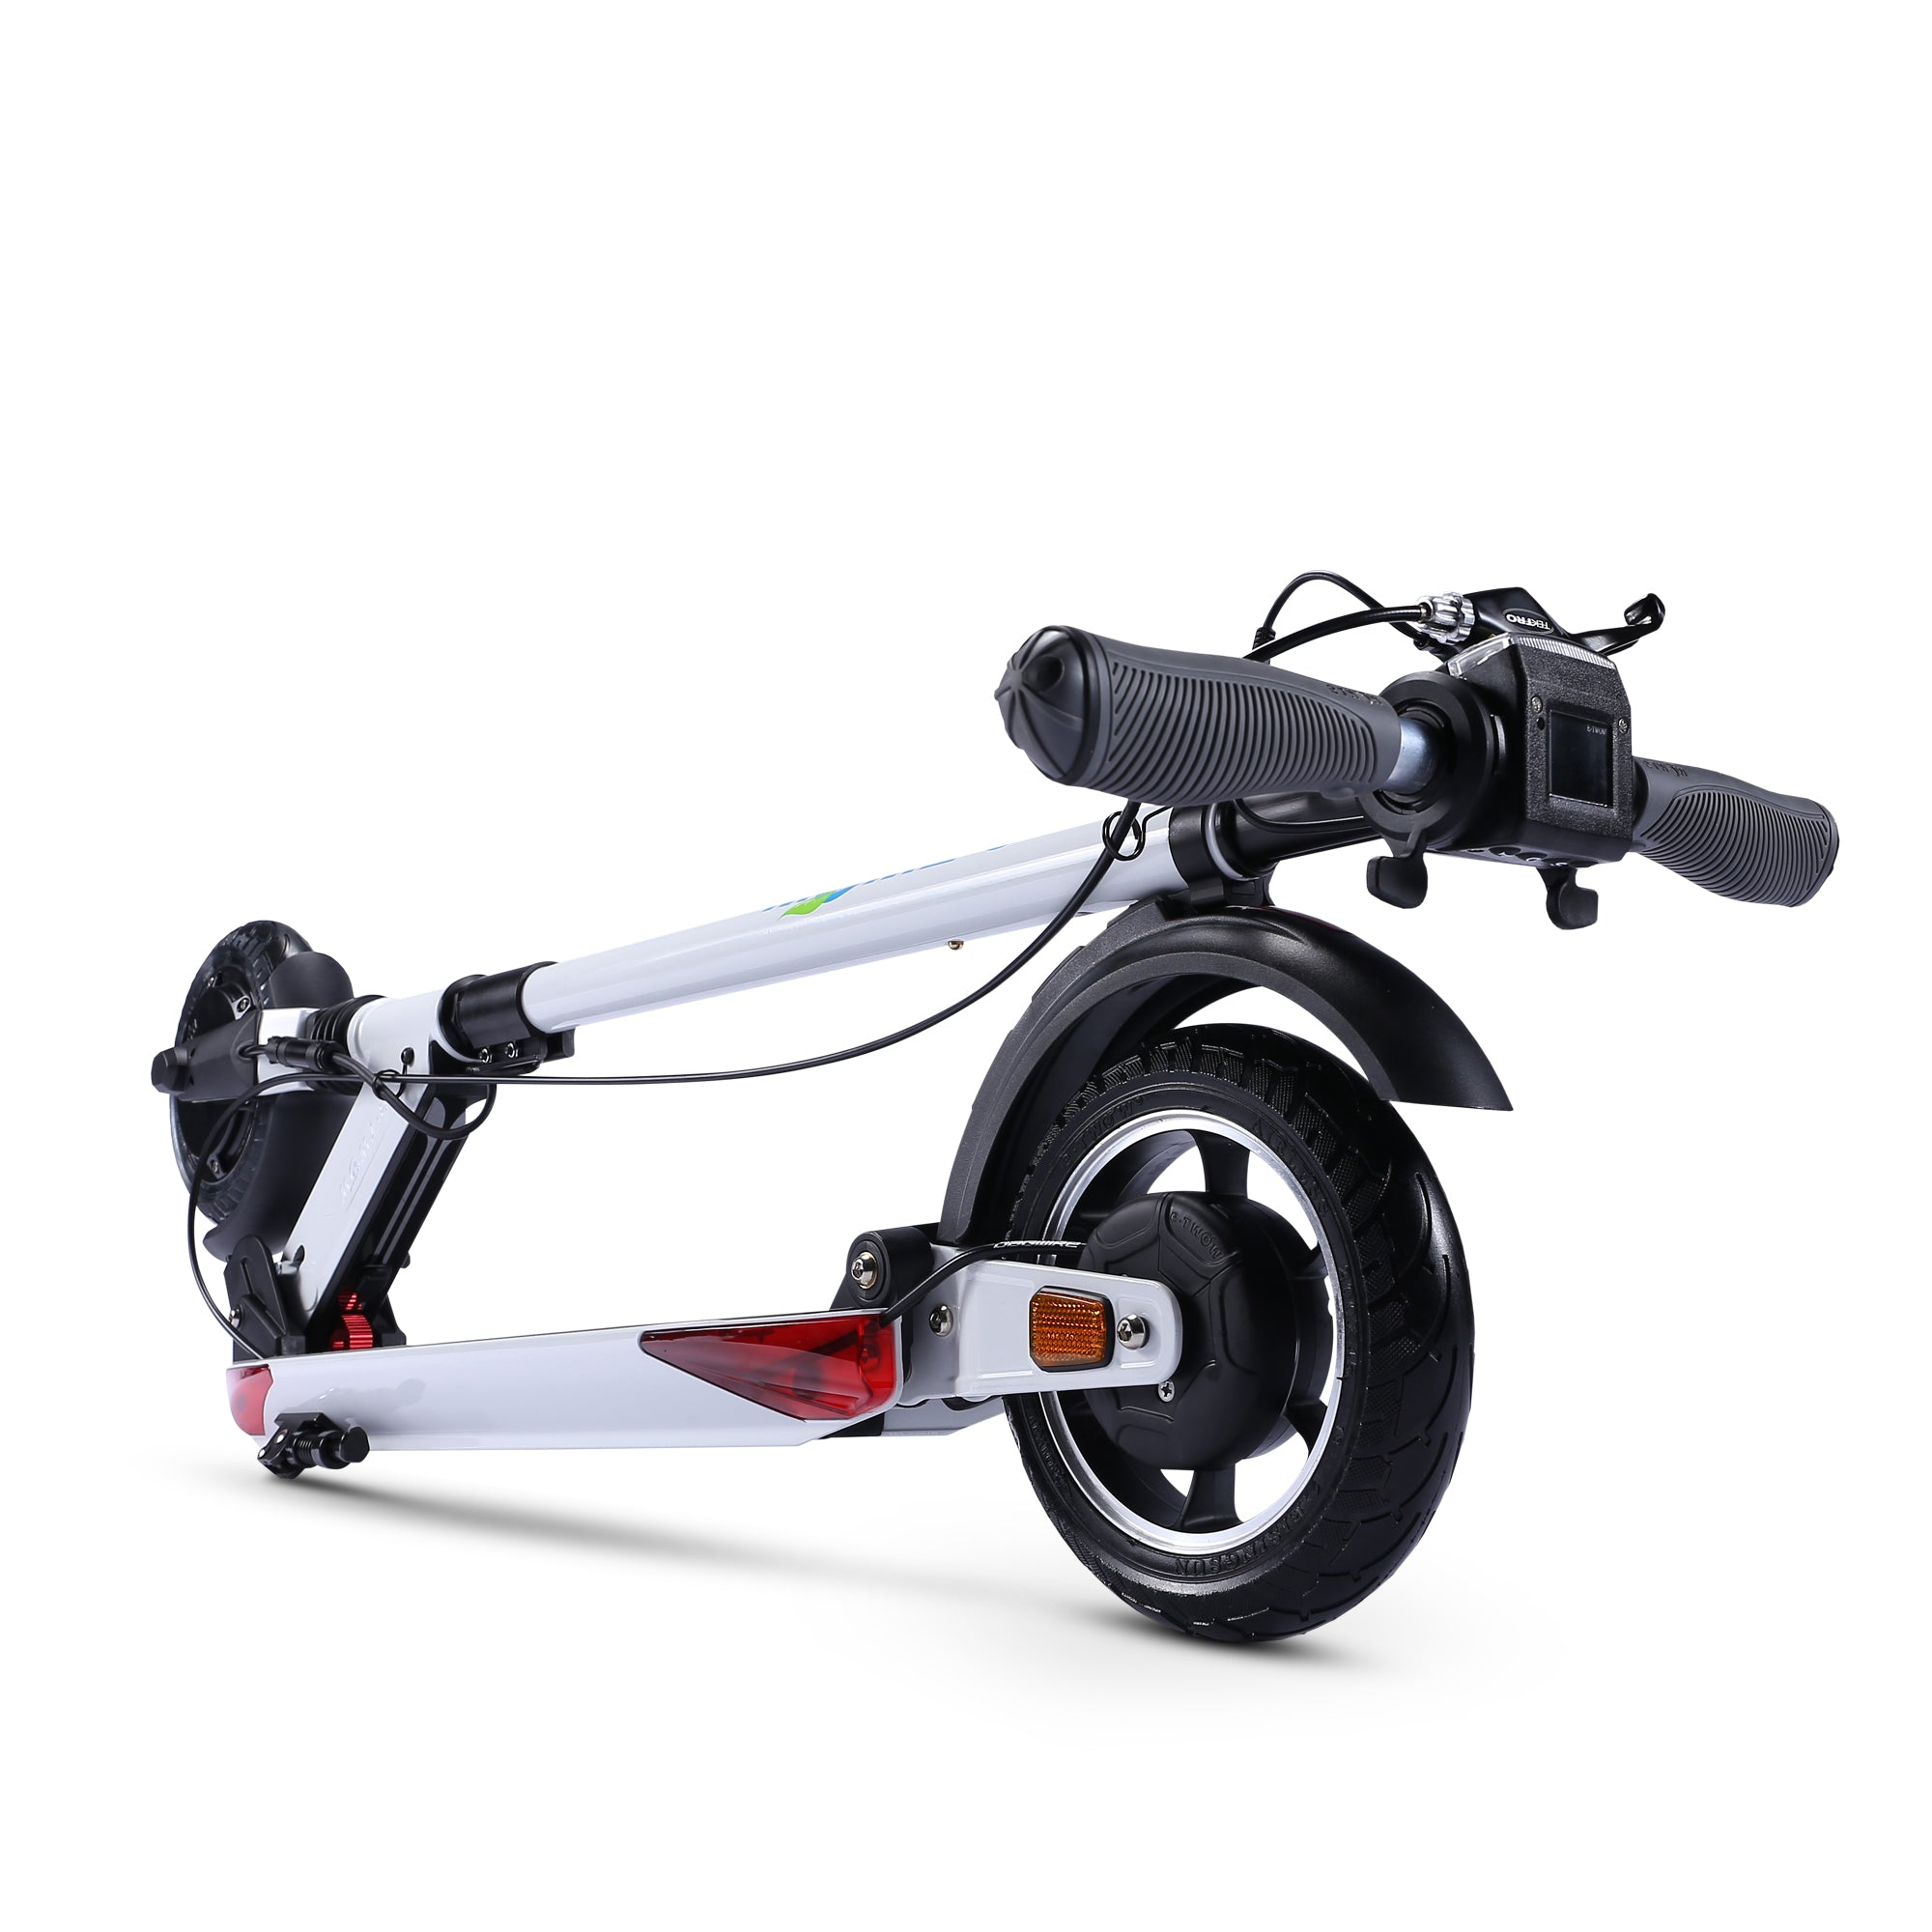 Buy The New GT which is top of the line for electric scooters.